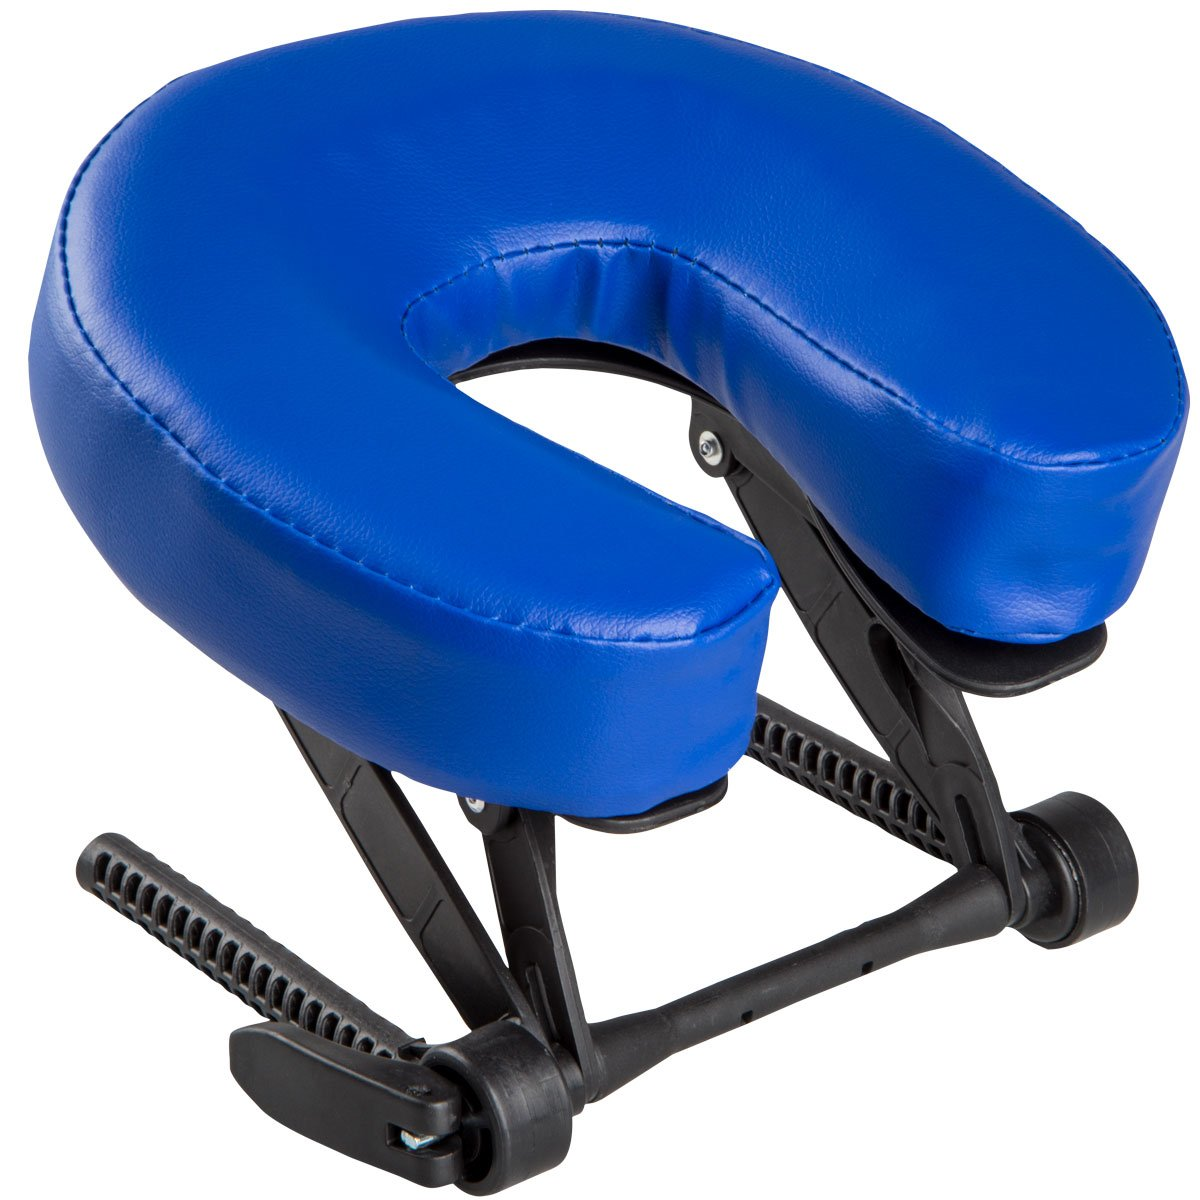 3B Scientific W60603B Blue Adjustable Headrest with Metal Brackets for Therapy Tables 1013732